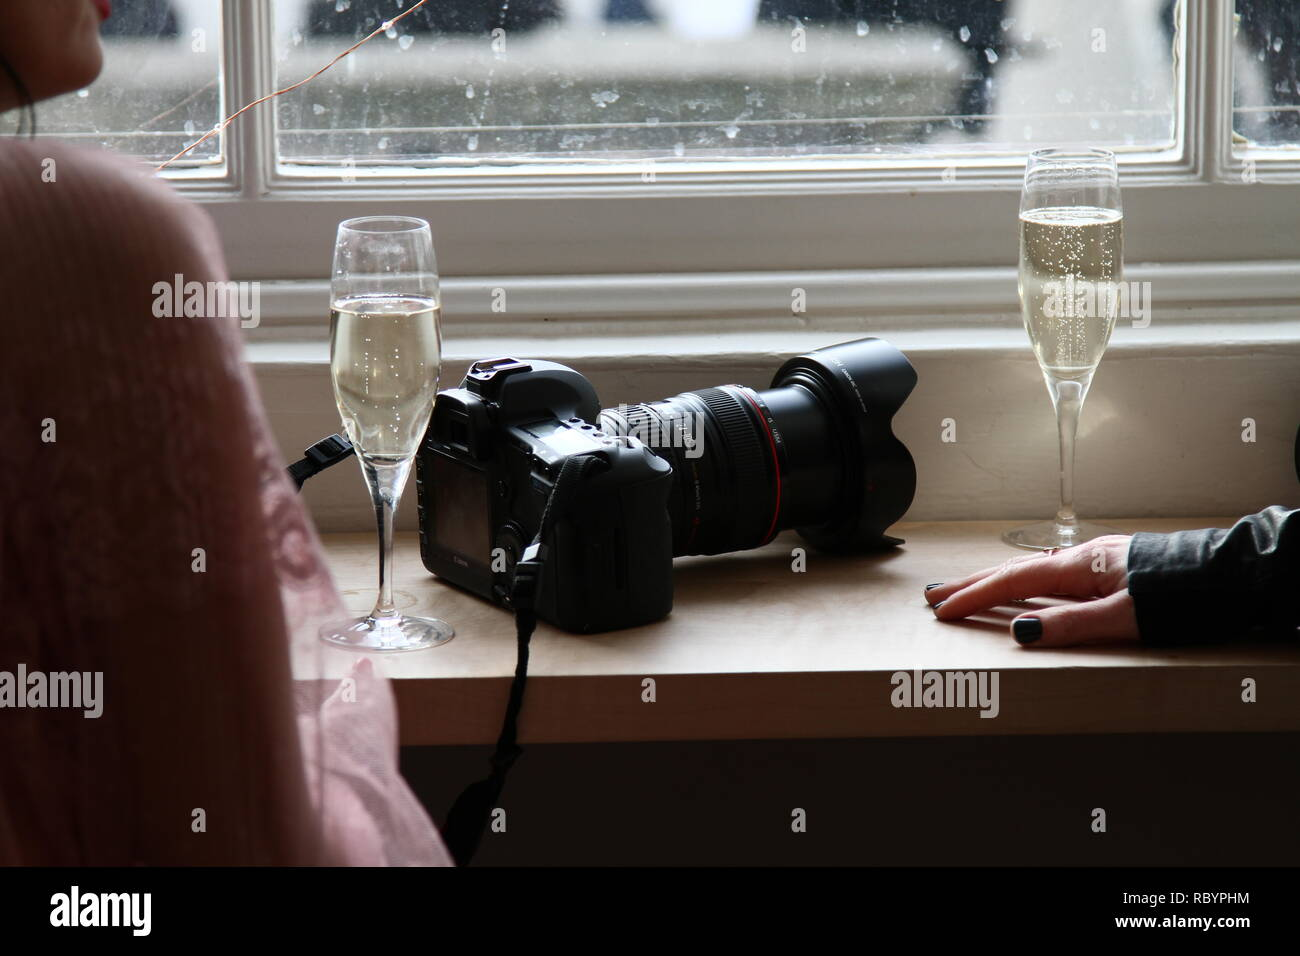 Two members of the public having a drink in a public house with water stained windows and a Canon camera and lens on window shelf [ seal ]. The people were unaware of this photograph being taken. The image could be cropped slightly and then used as the perfect book cover . Moody book cover. Stock Photo